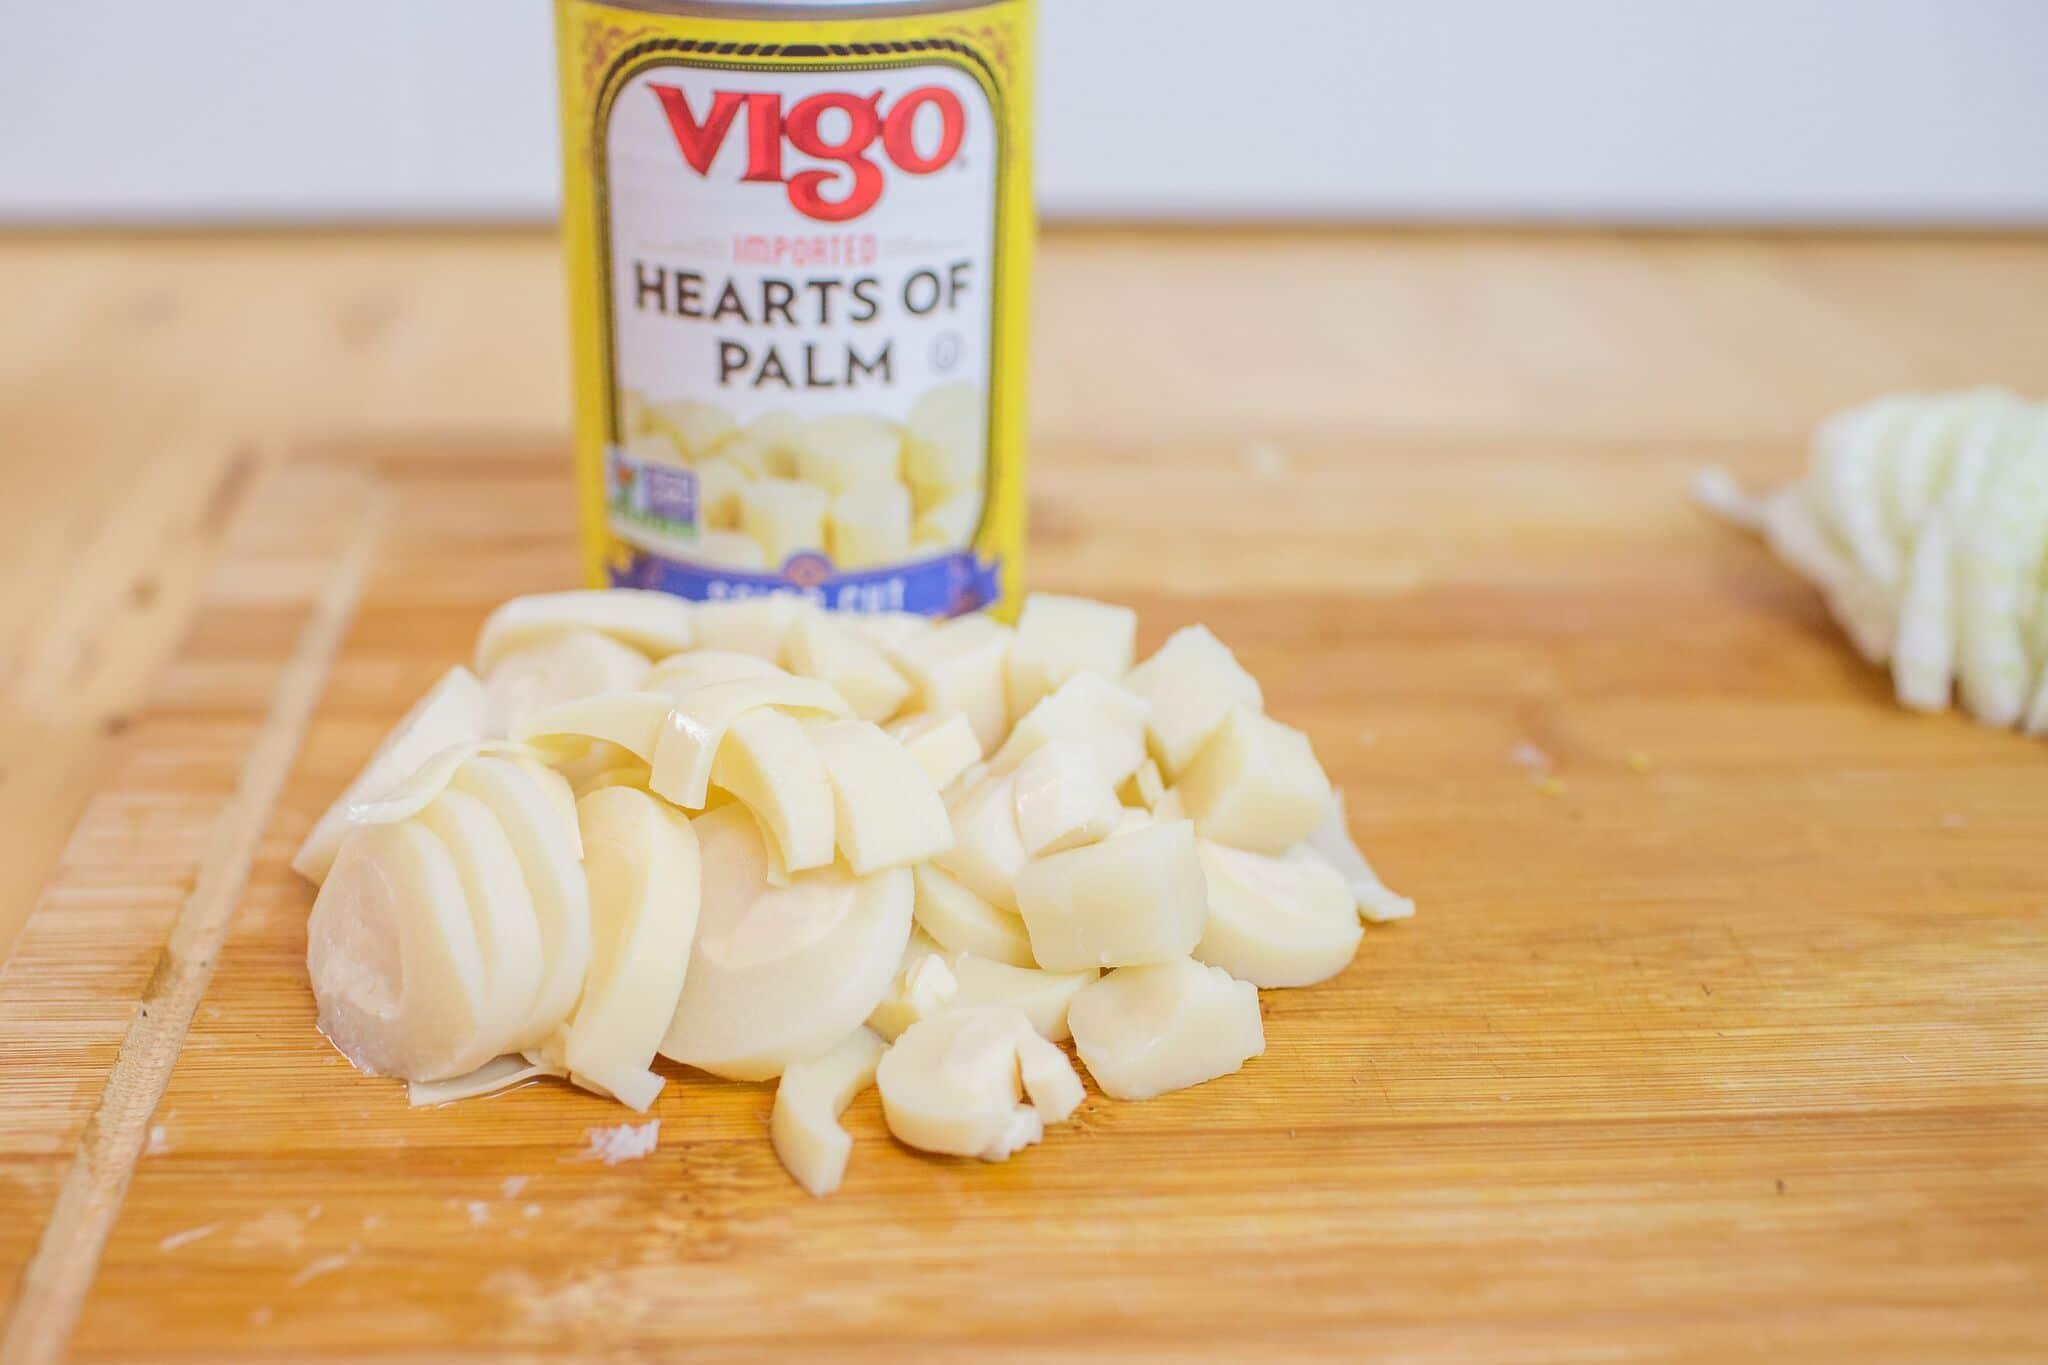 Slice hearts of palm into bite size pieces.